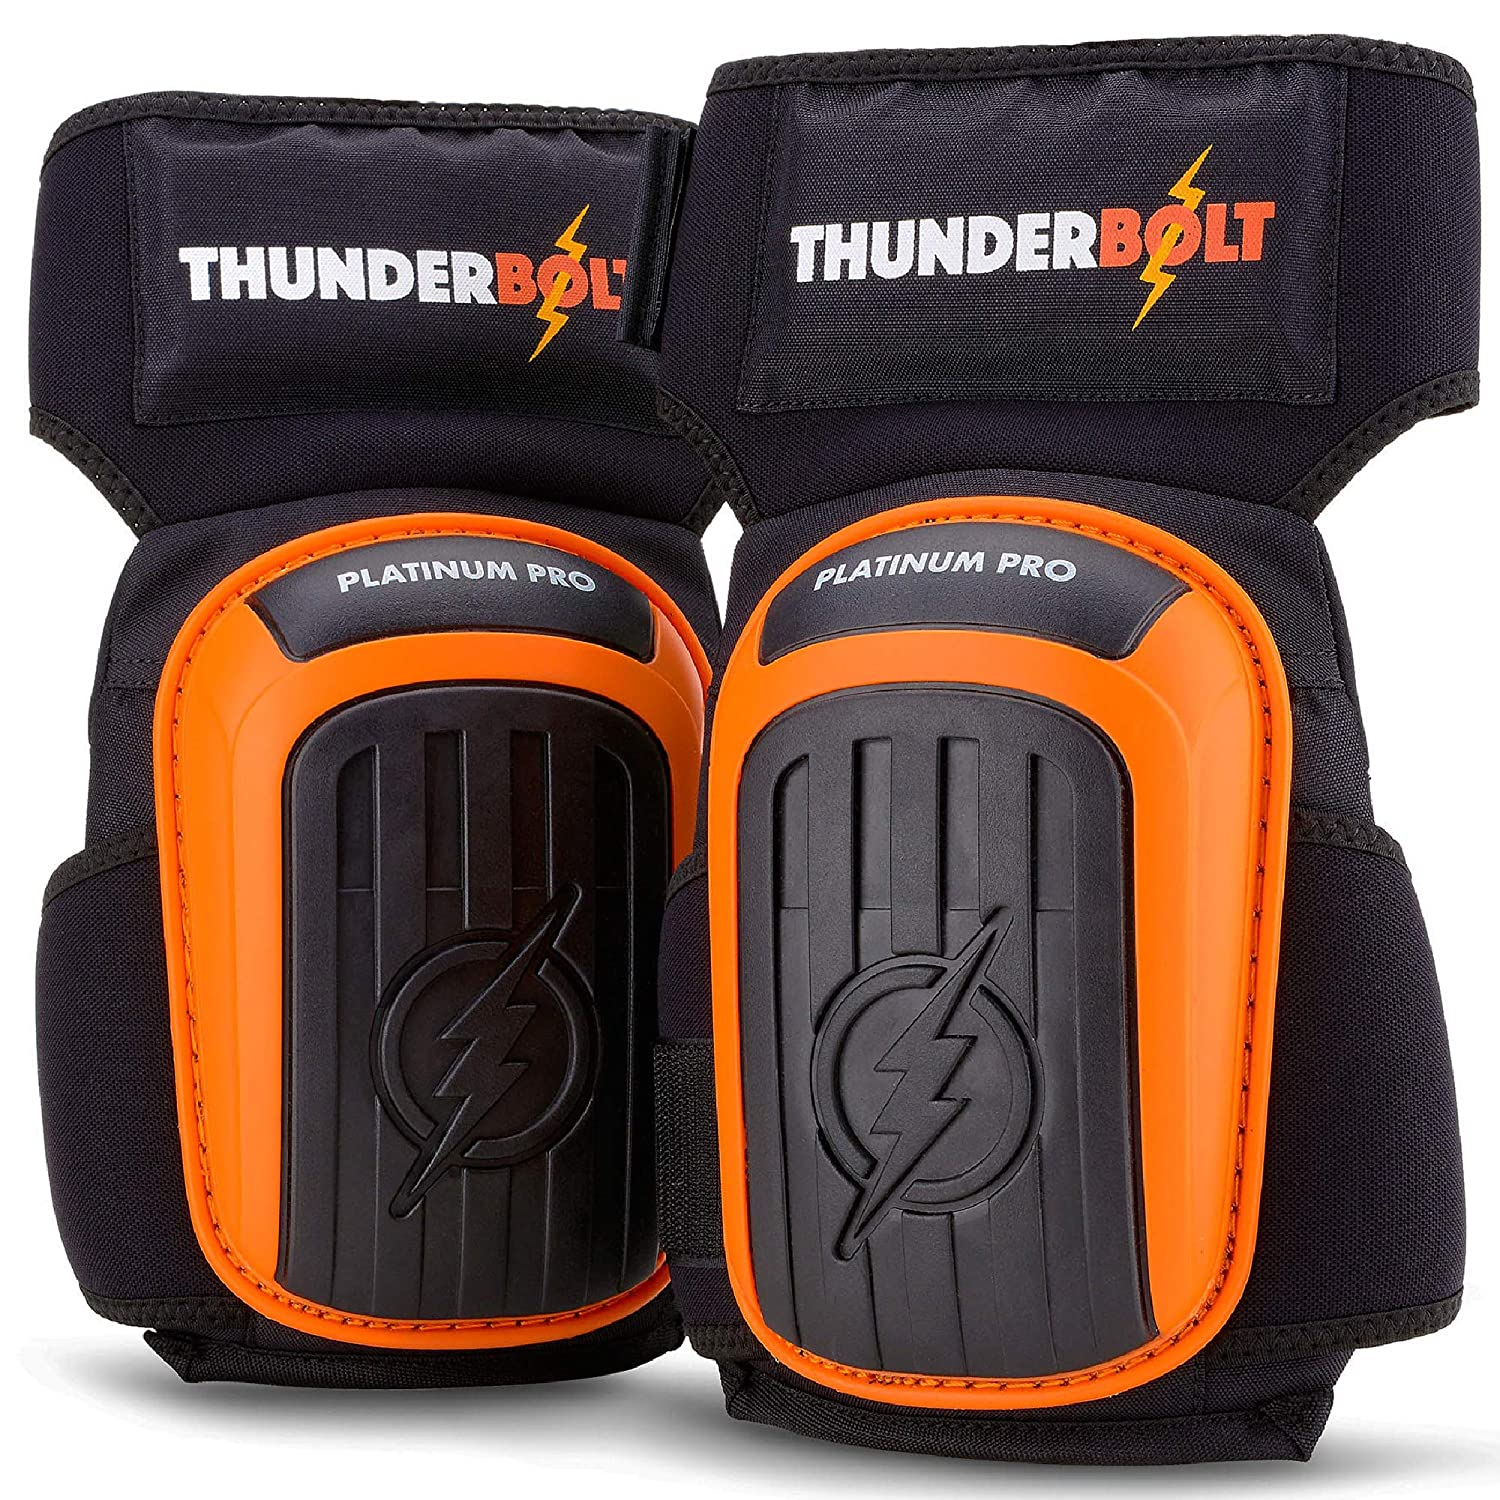 Knee Pads for Work by Thunderbolt for Construction, Flooring, Gardening, Cleaning, Tile Heavy Duty with Gel Cushion and Anti-Slip Straps